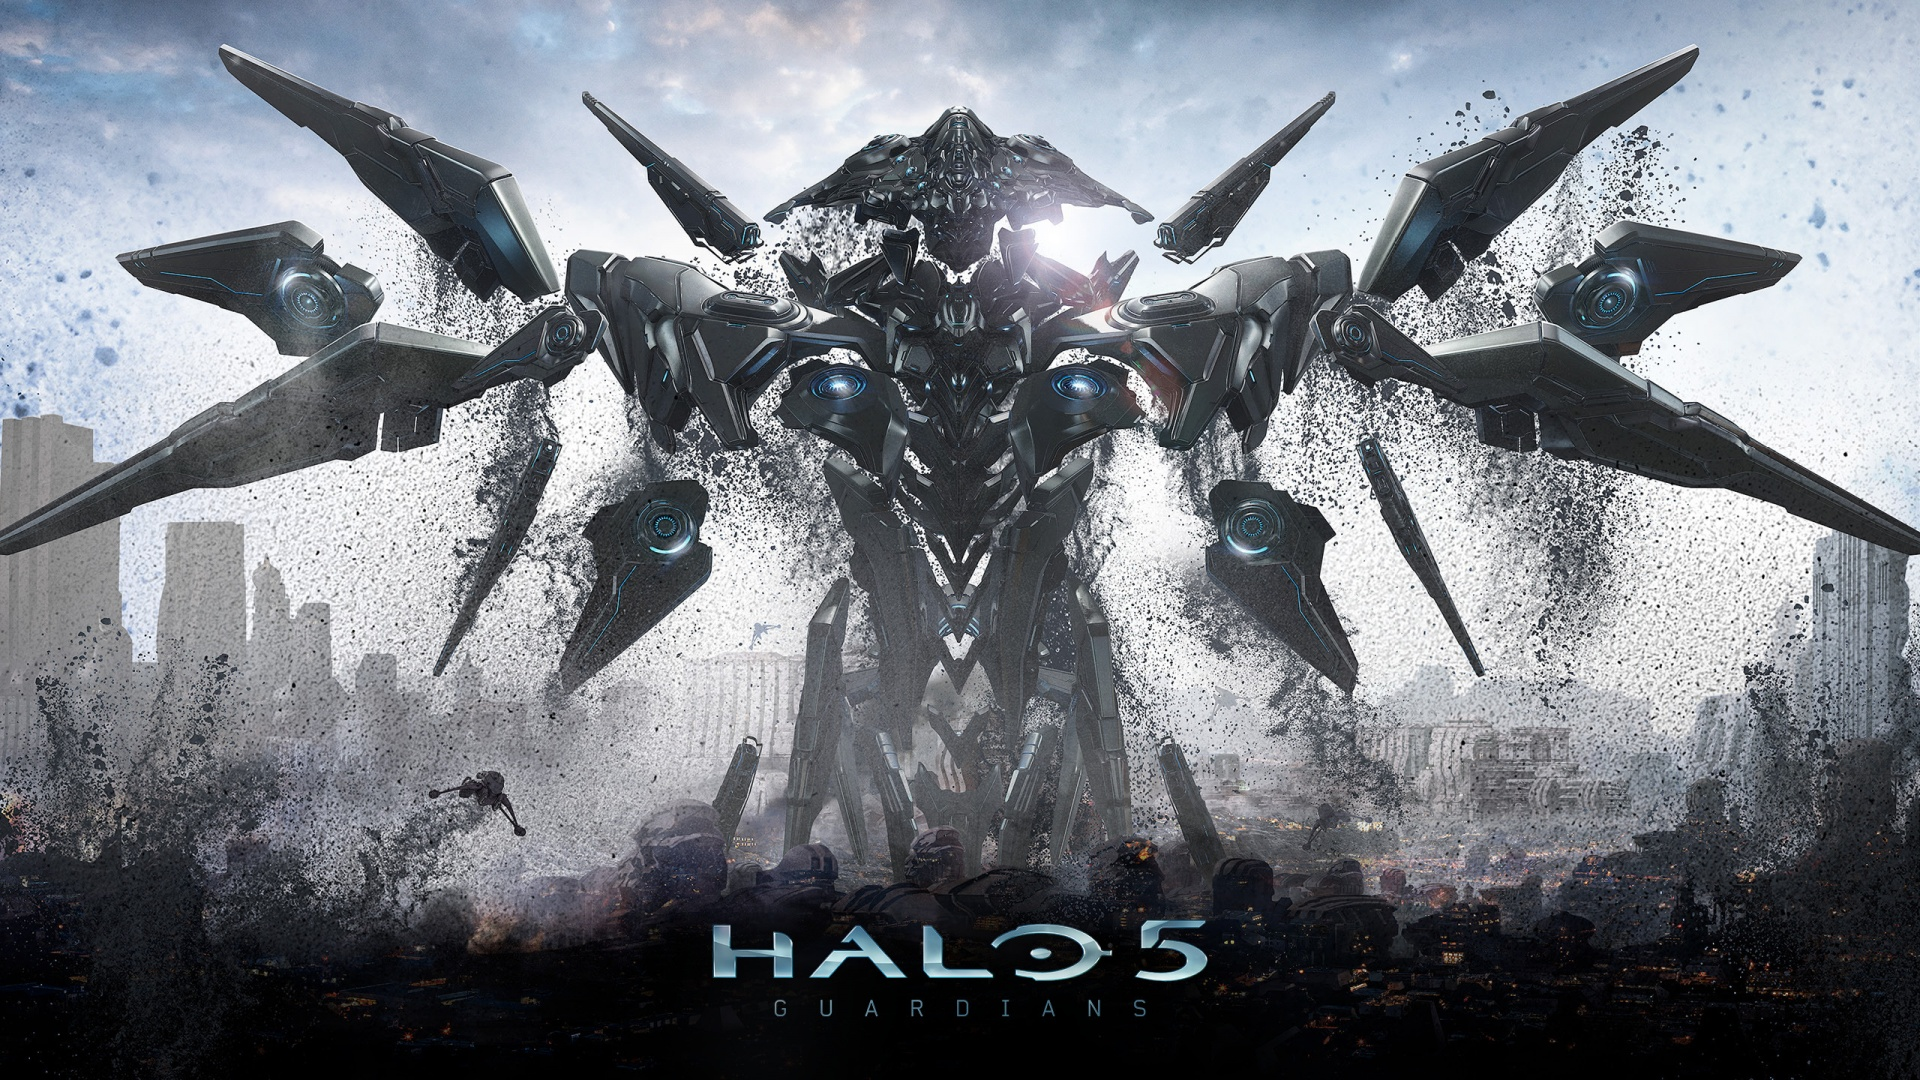 Guardian Halo 5 Guardians Wallpapers HD Wallpapers 1920x1080